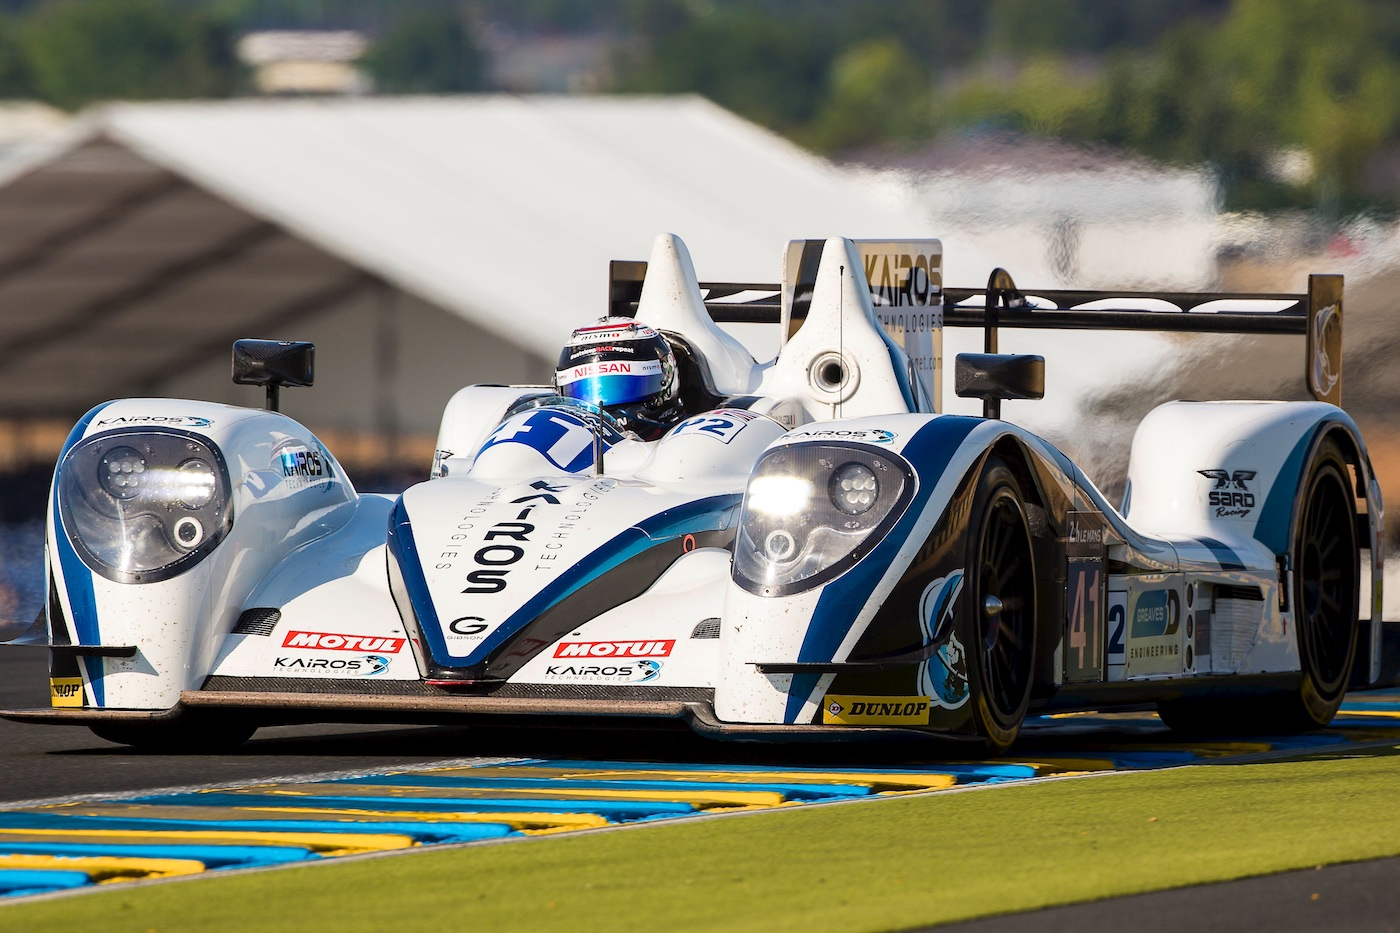 Le Mans disappointment for Greaves